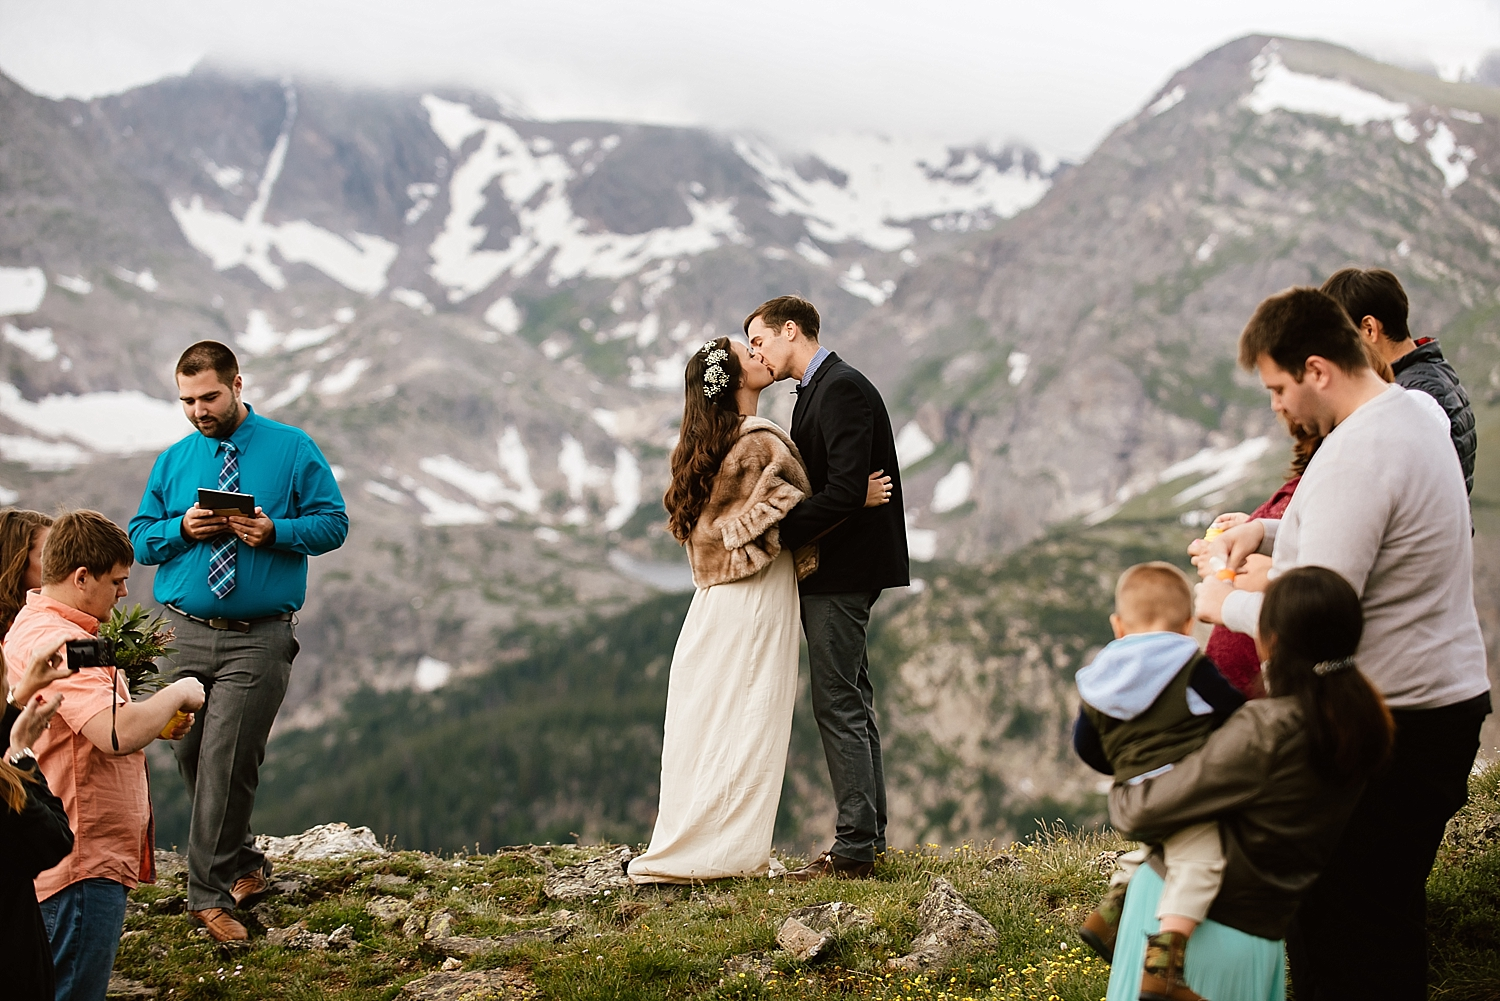 Congratulations to Jessica and Edward after they said their vows on a mountain in Estes Park! I love this winter wedding attire for a gorgeous Rocky Mountain National Park elopement! | RMNP ceremony photos by Estes Park wedding photographer, Maddie Mae.